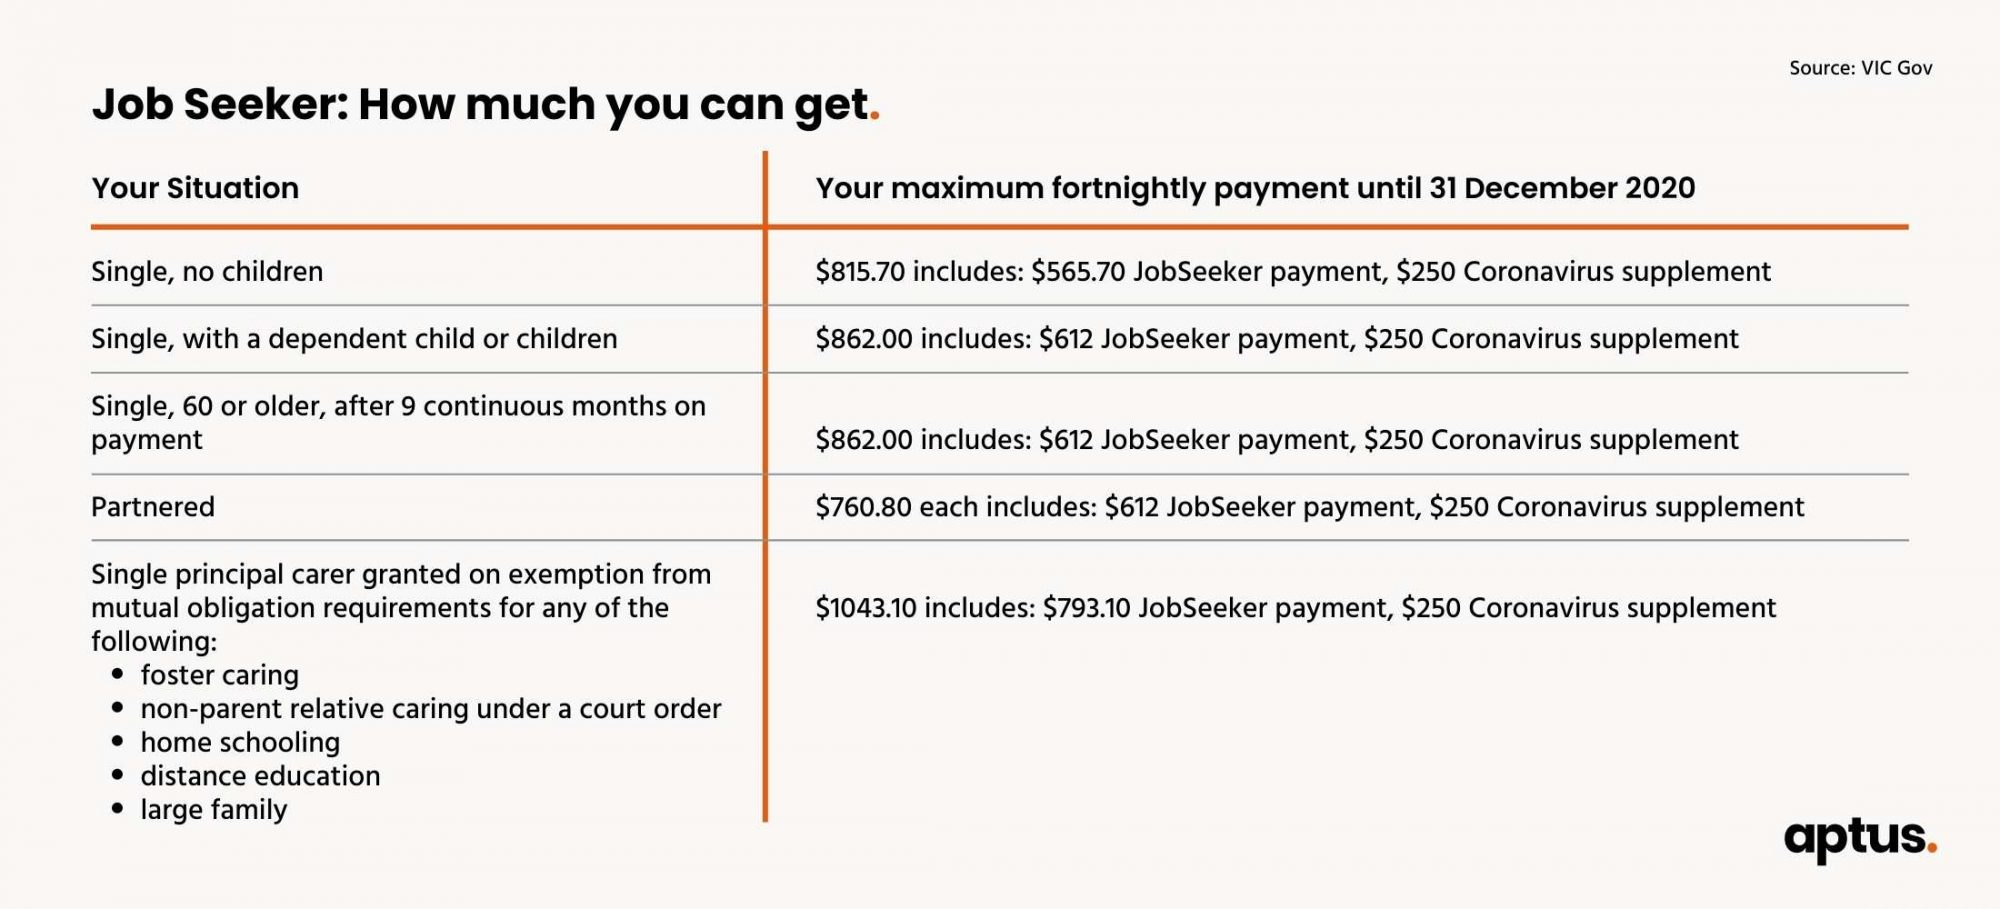 jobseeker payments: how much you can get